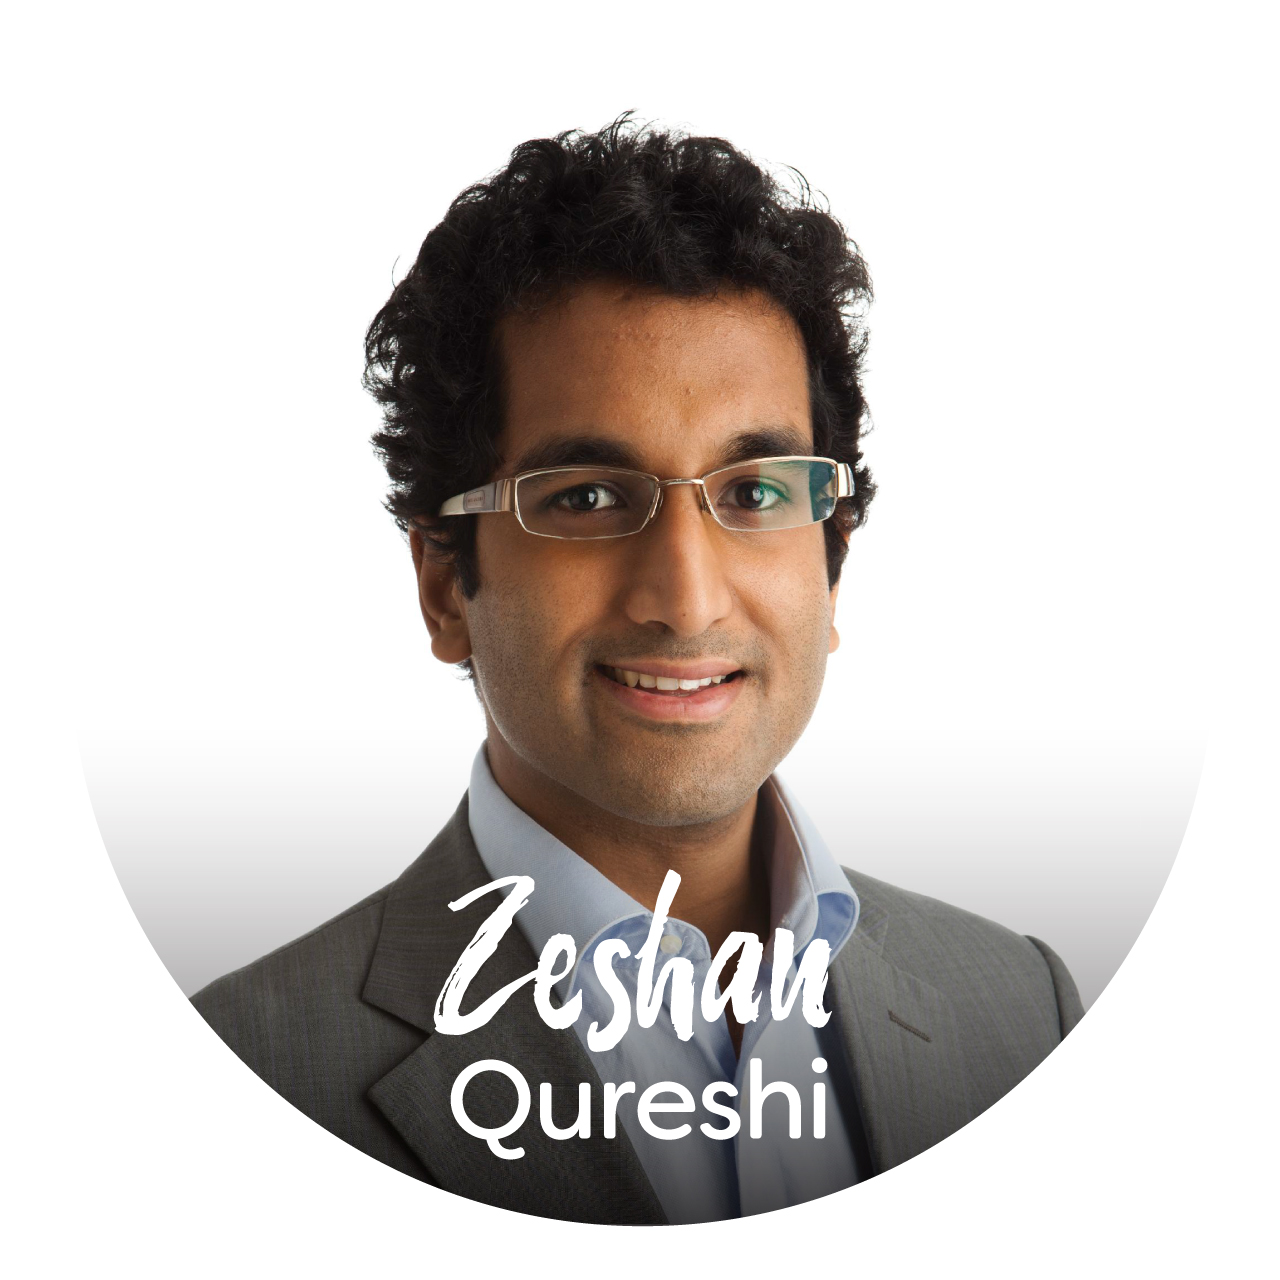 A picture of Zeshan Qureshi